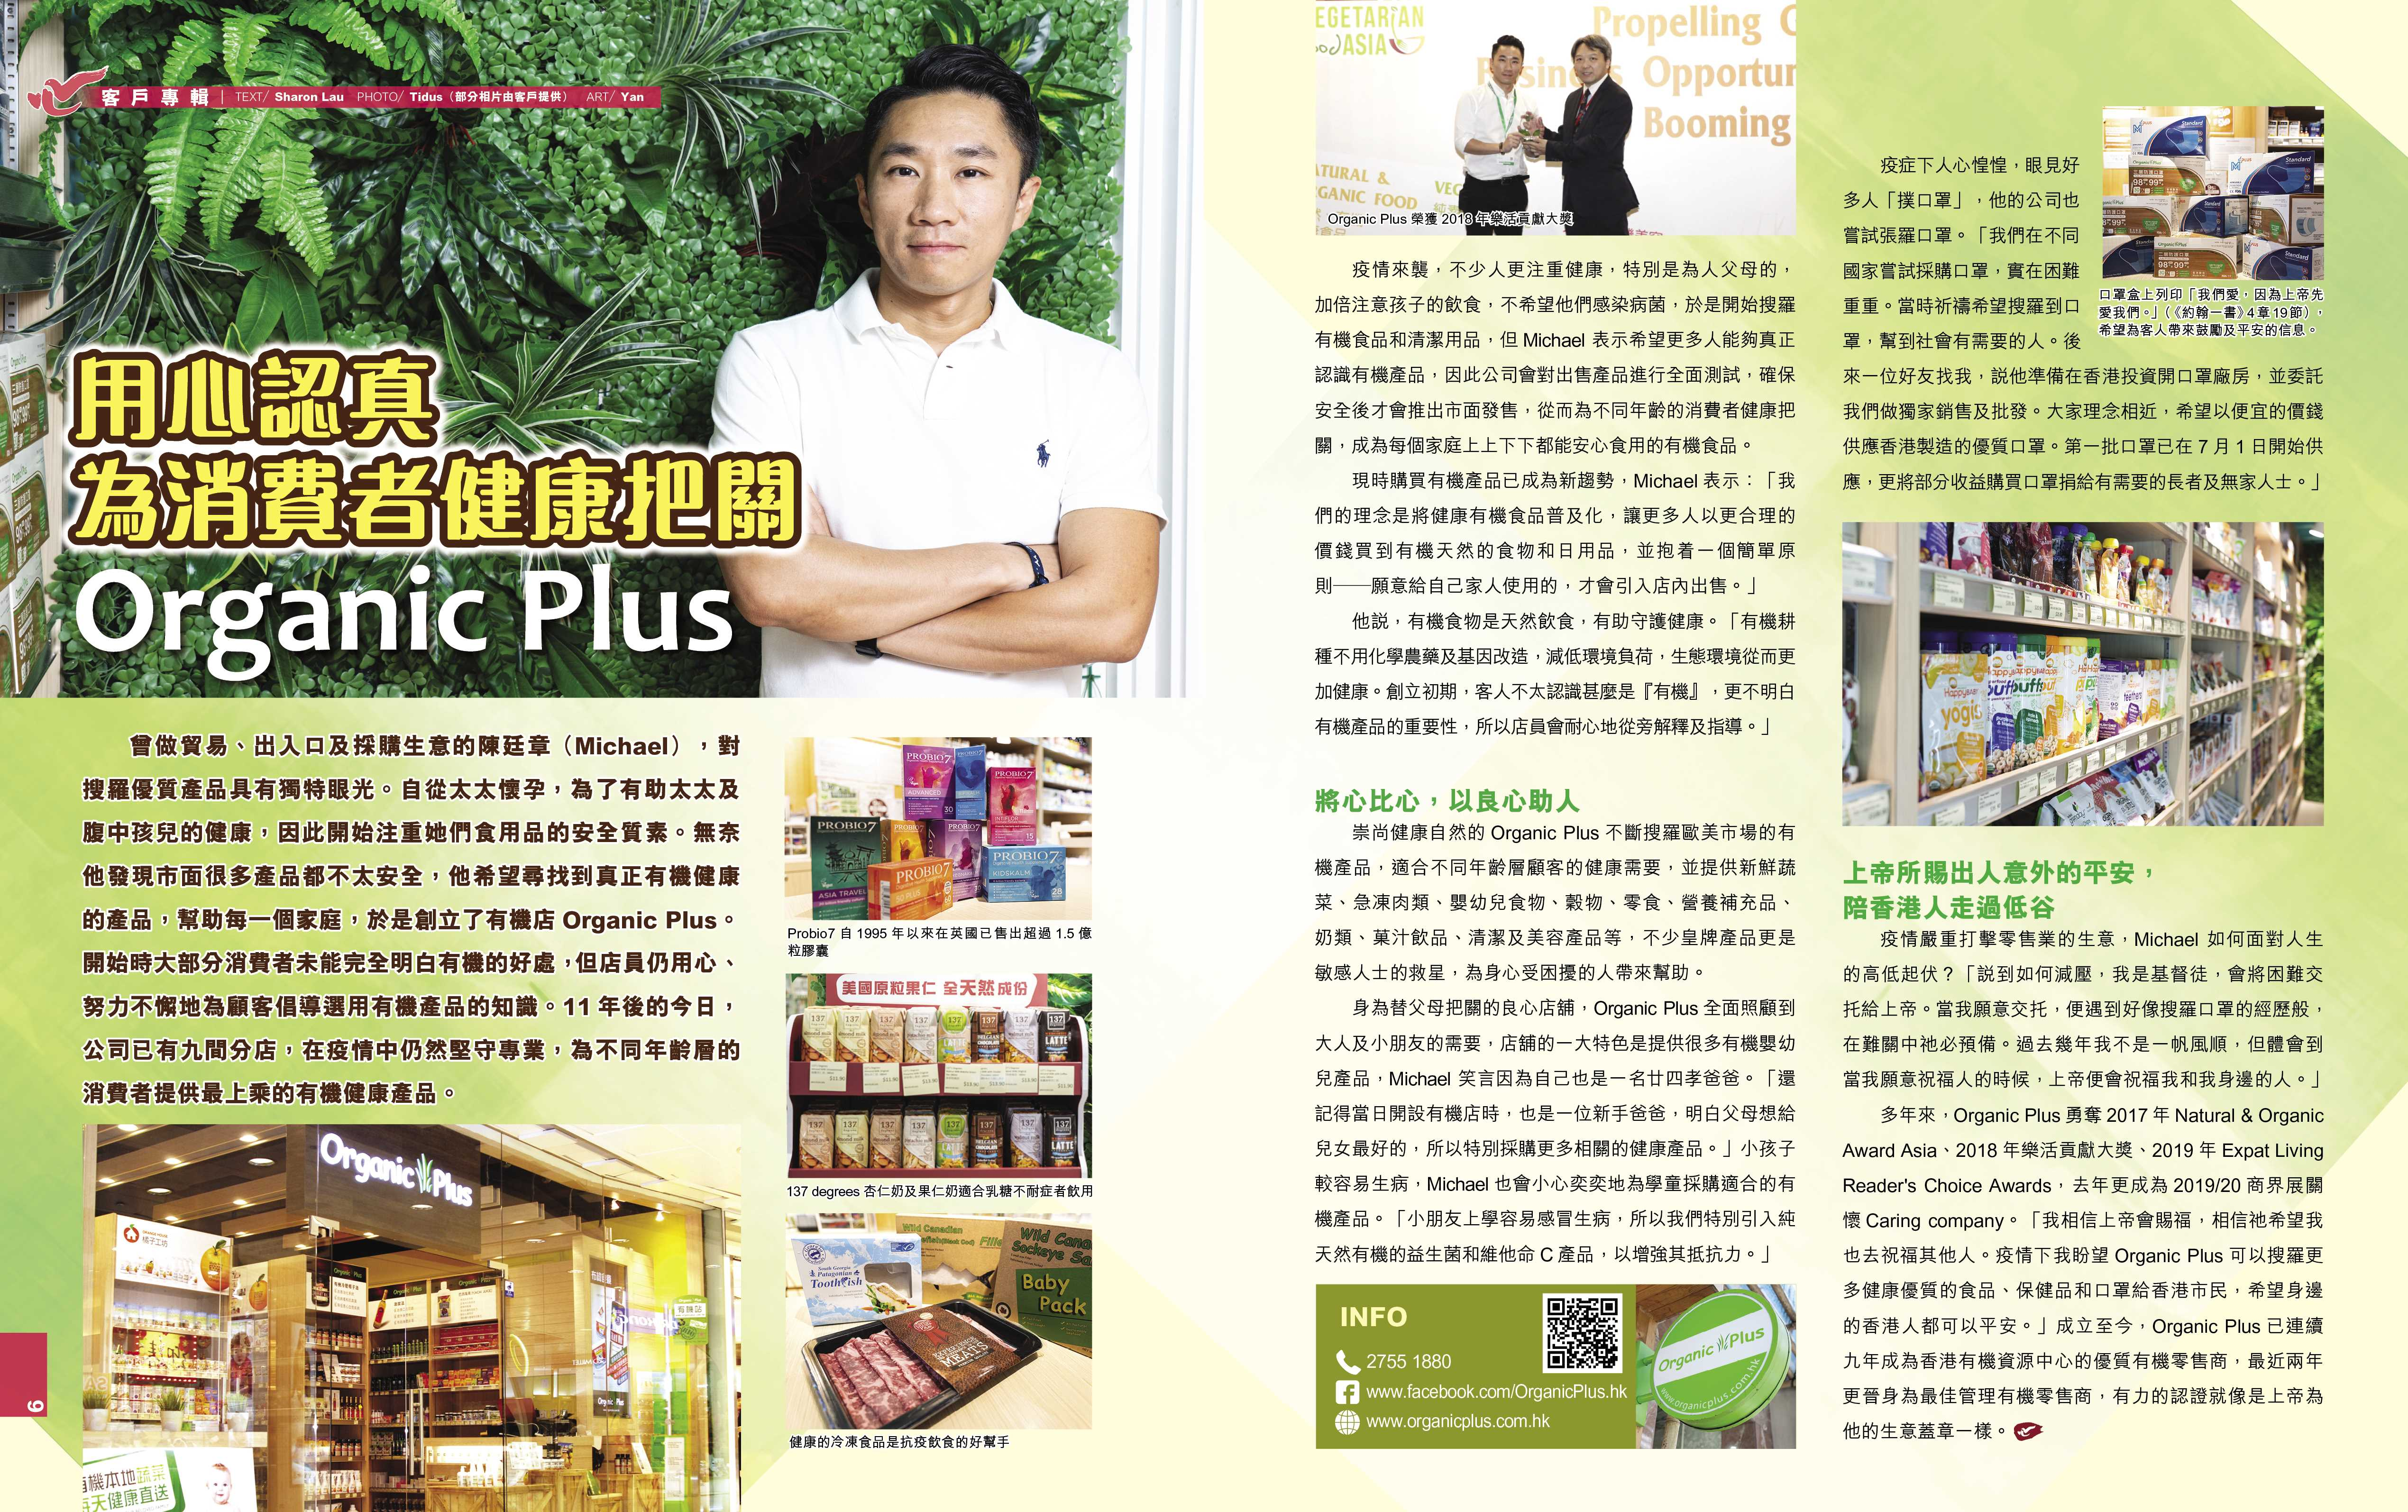 Angel's Heart - Care for the health of consumers O